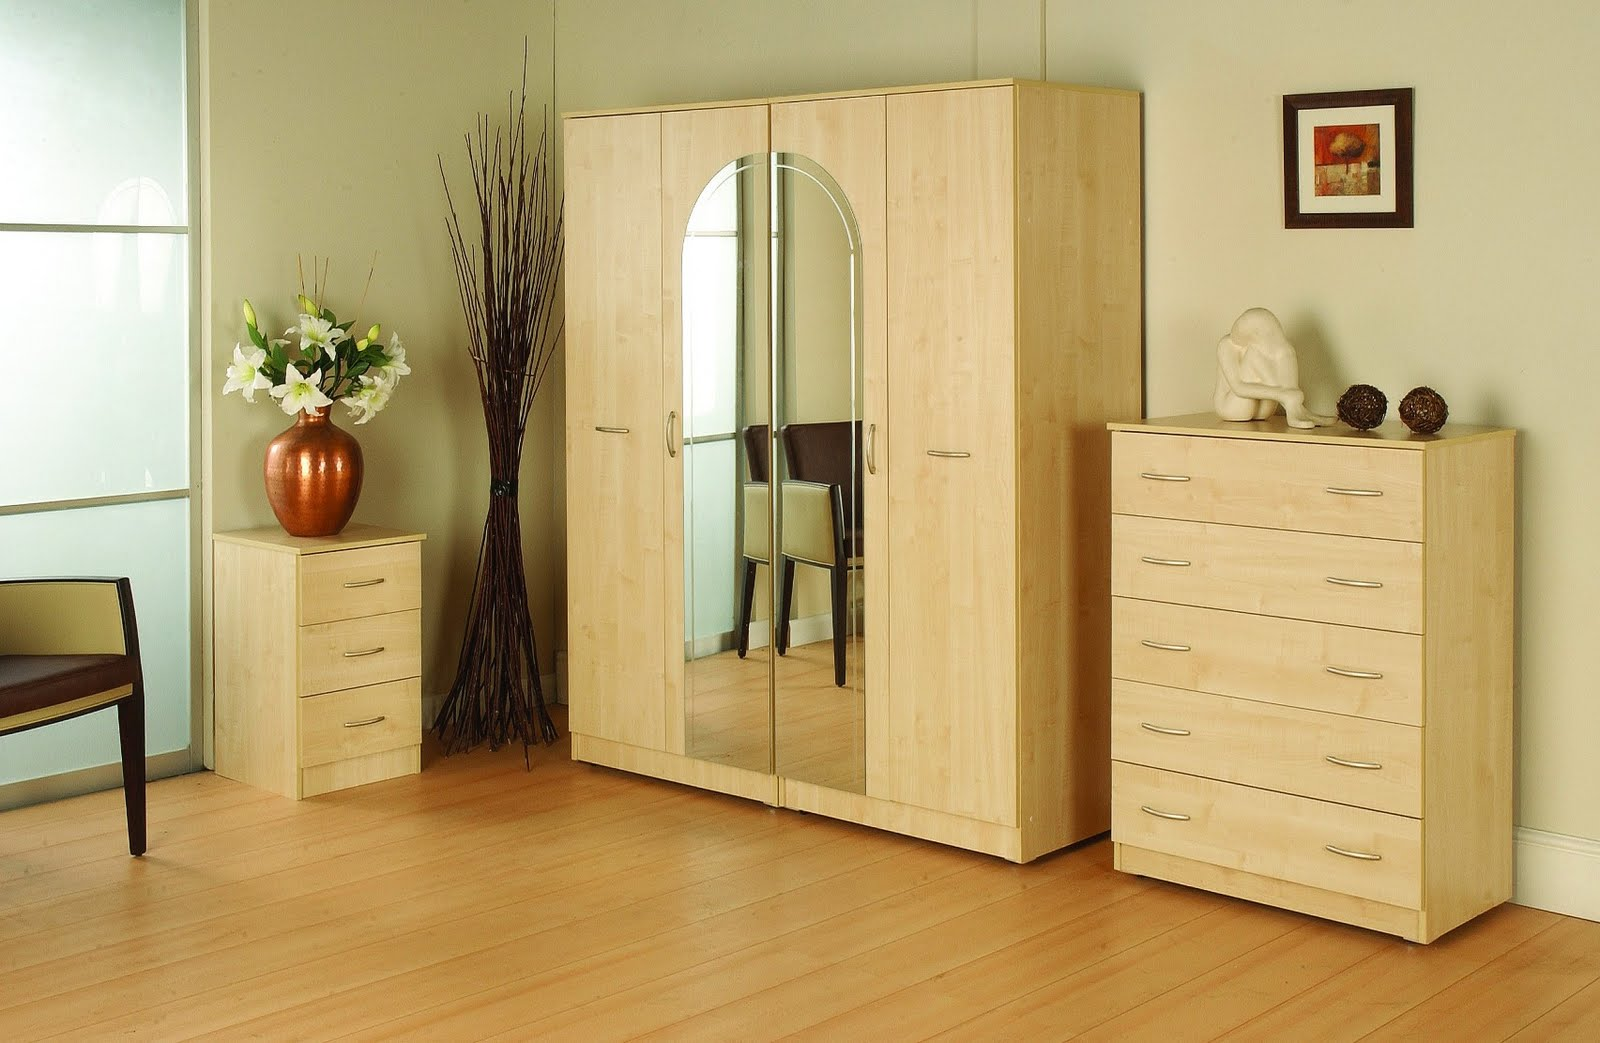 Bedroom wardrobe designs india wardrobe interior design 2 for Double bedroom interior designs